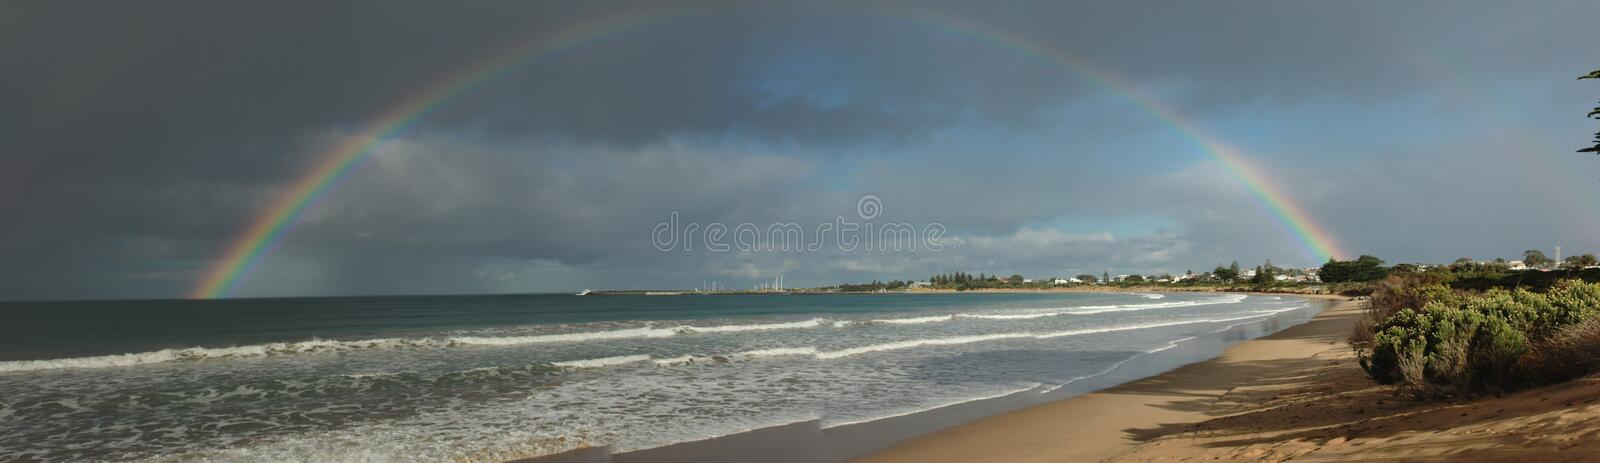 large complete full half circle rainbow stretching across the sky into the ocean at Apollo Bay, Victoria, Australia royalty free stock photography